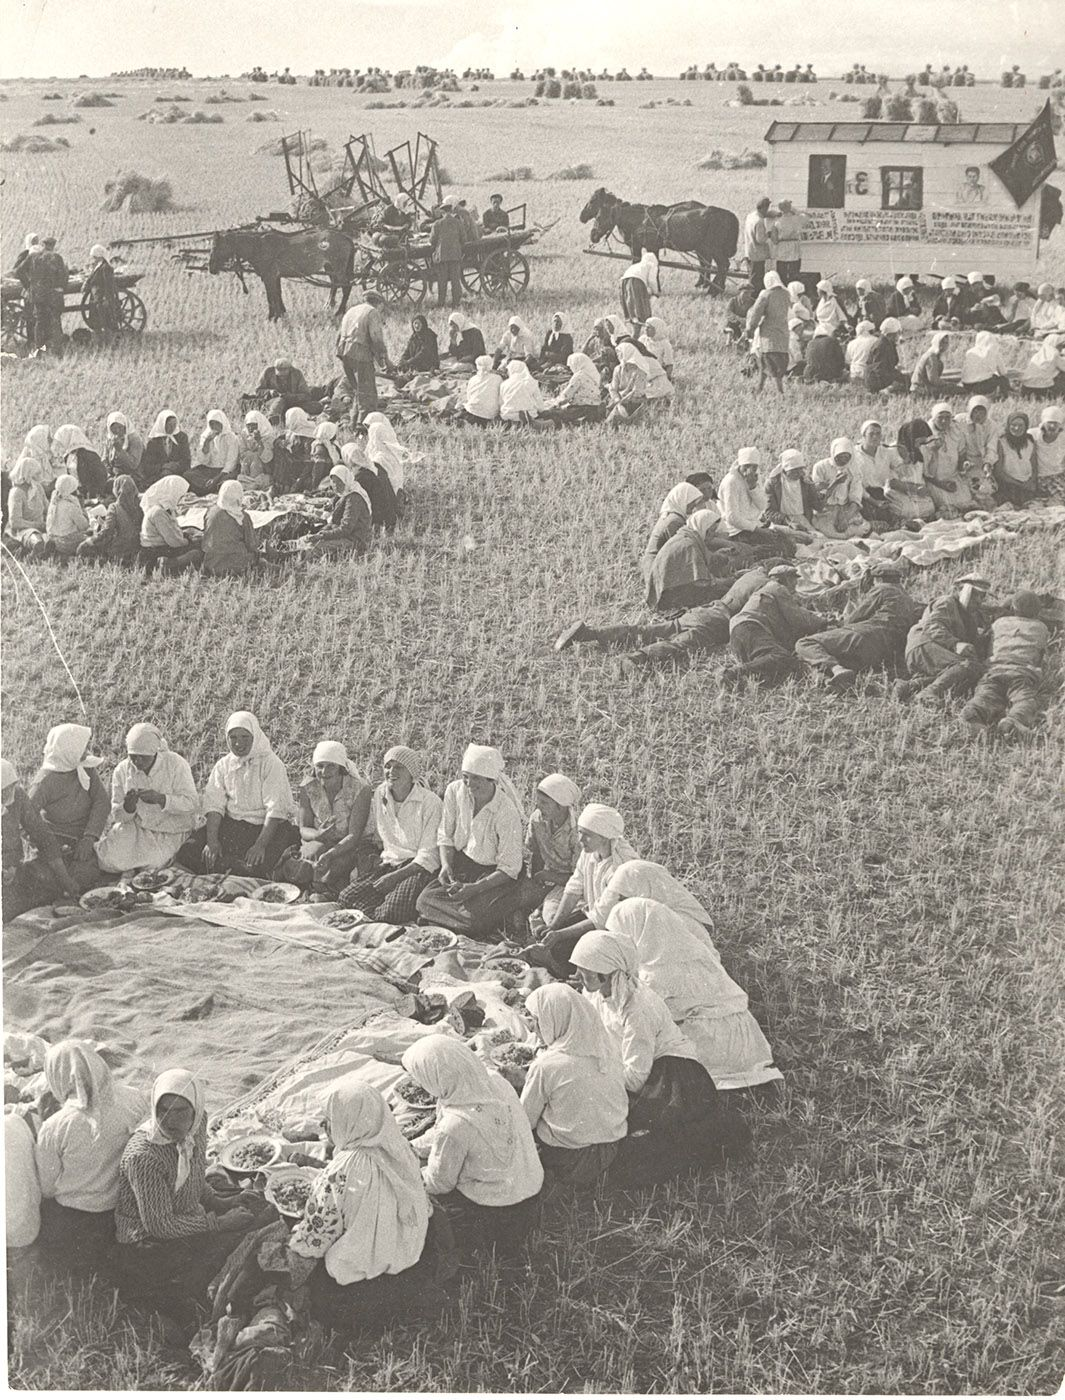 Georgy Petrusov (1903-1971)  Lunch in the Fields, 1934  Vintage gelatin silver print